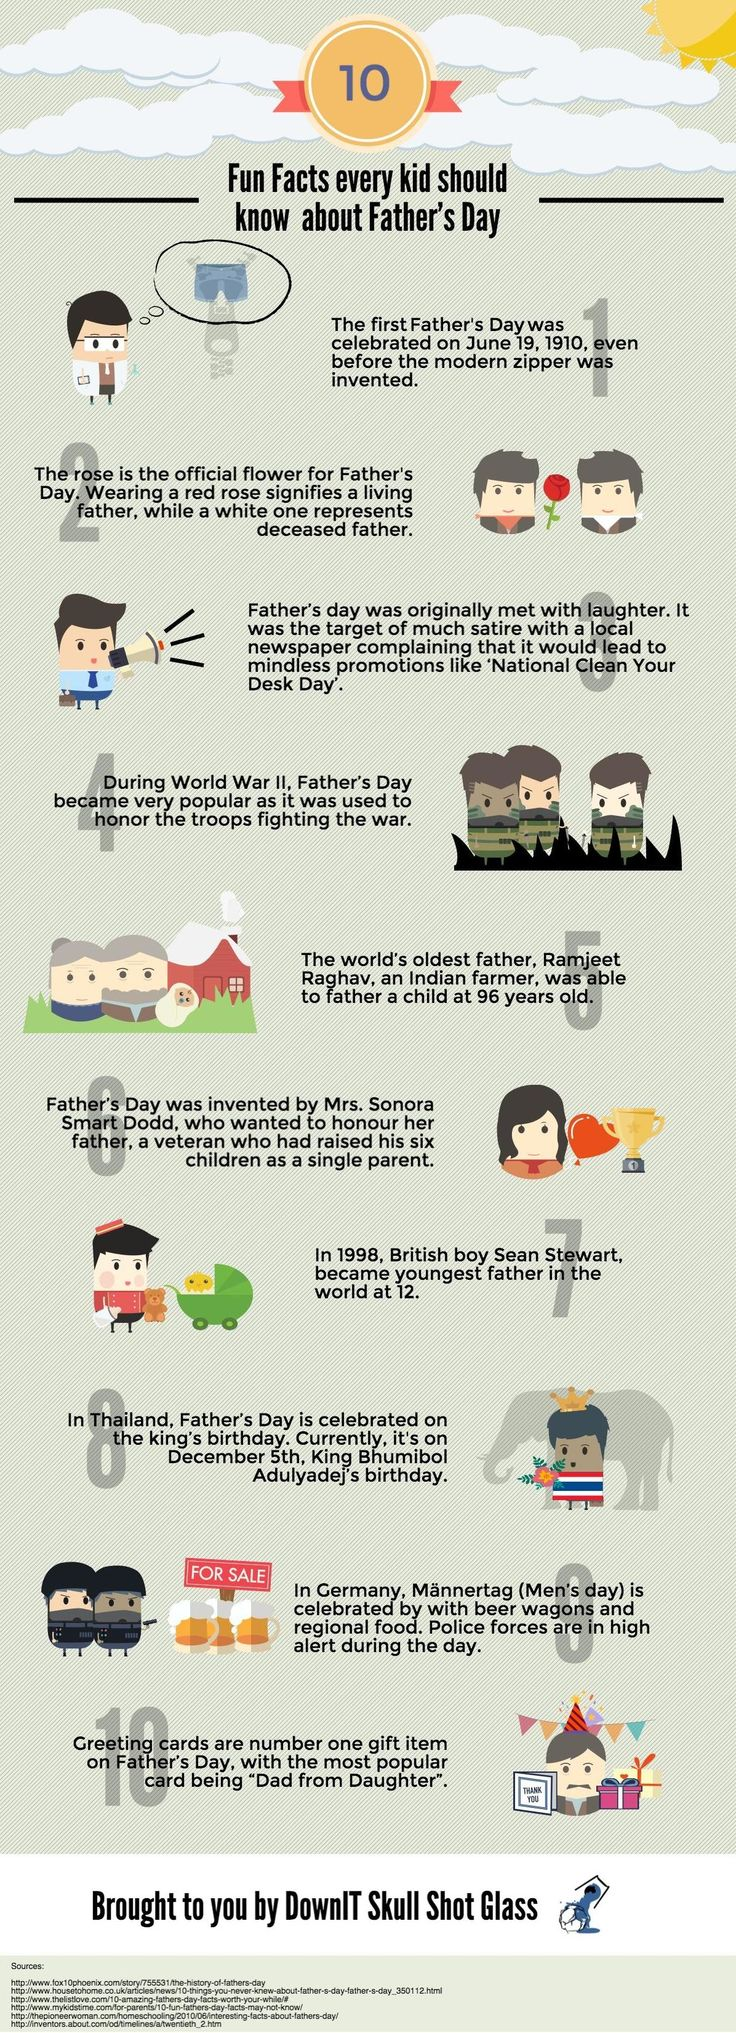 9 best happy fathers day images on pinterest dads father and 10 fun facts every kid should know about fathers day infographic fandeluxe Choice Image